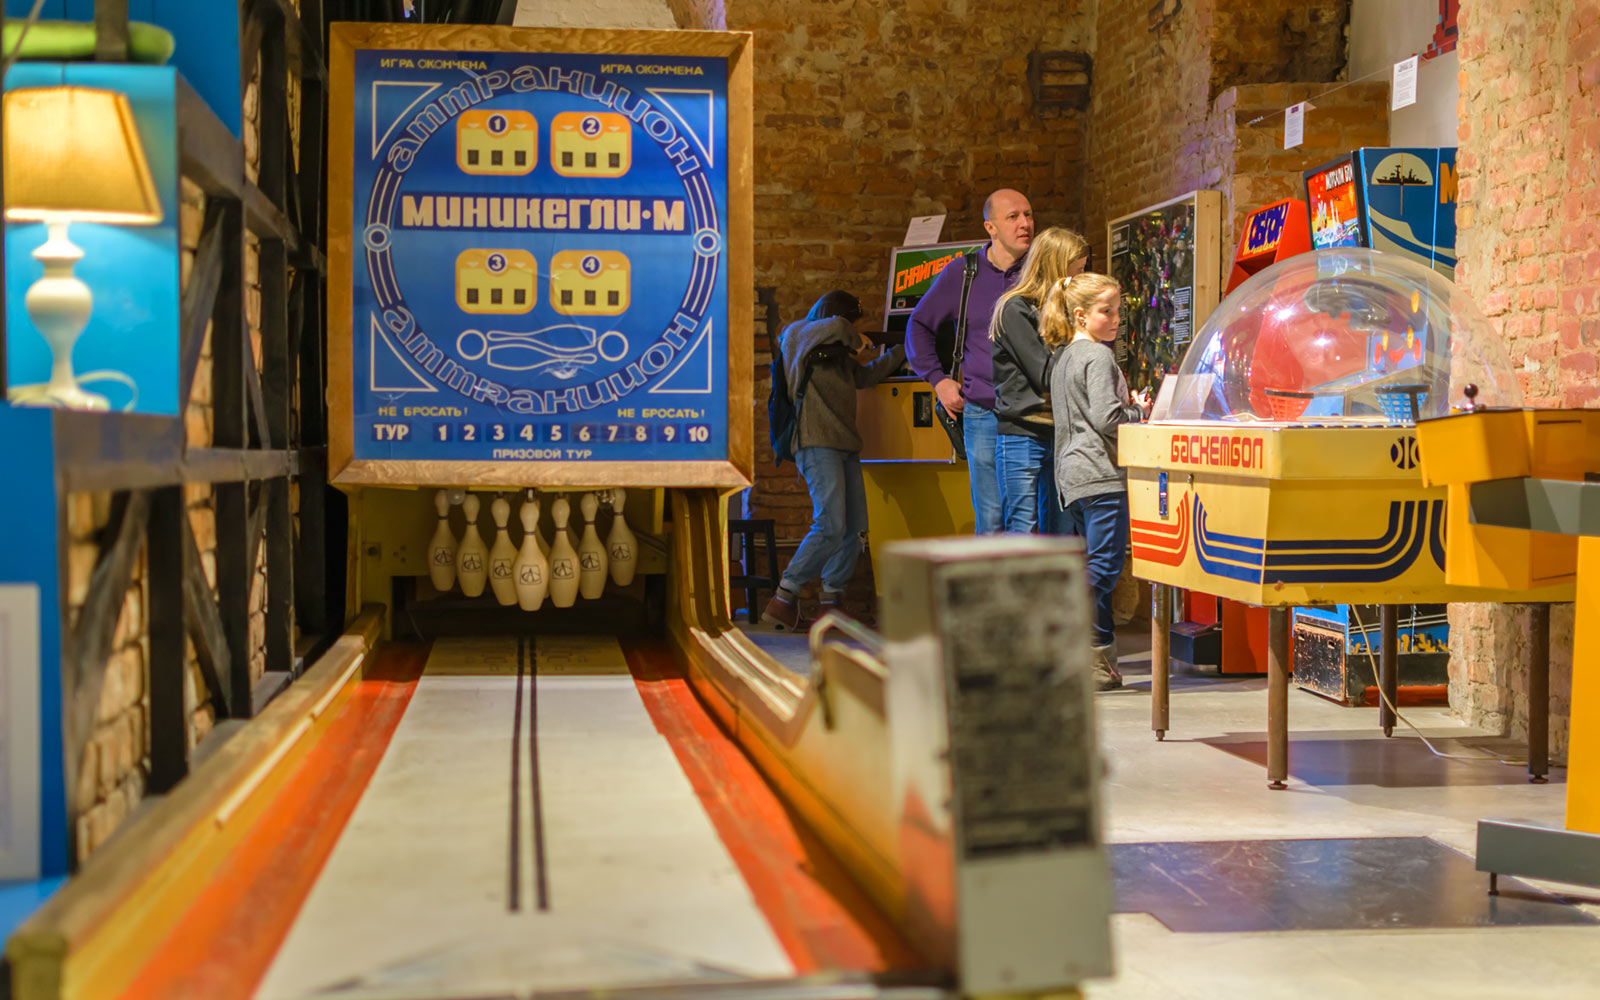 St. Petersburg's Best-kept Secret Is a Soviet Arcade Museum